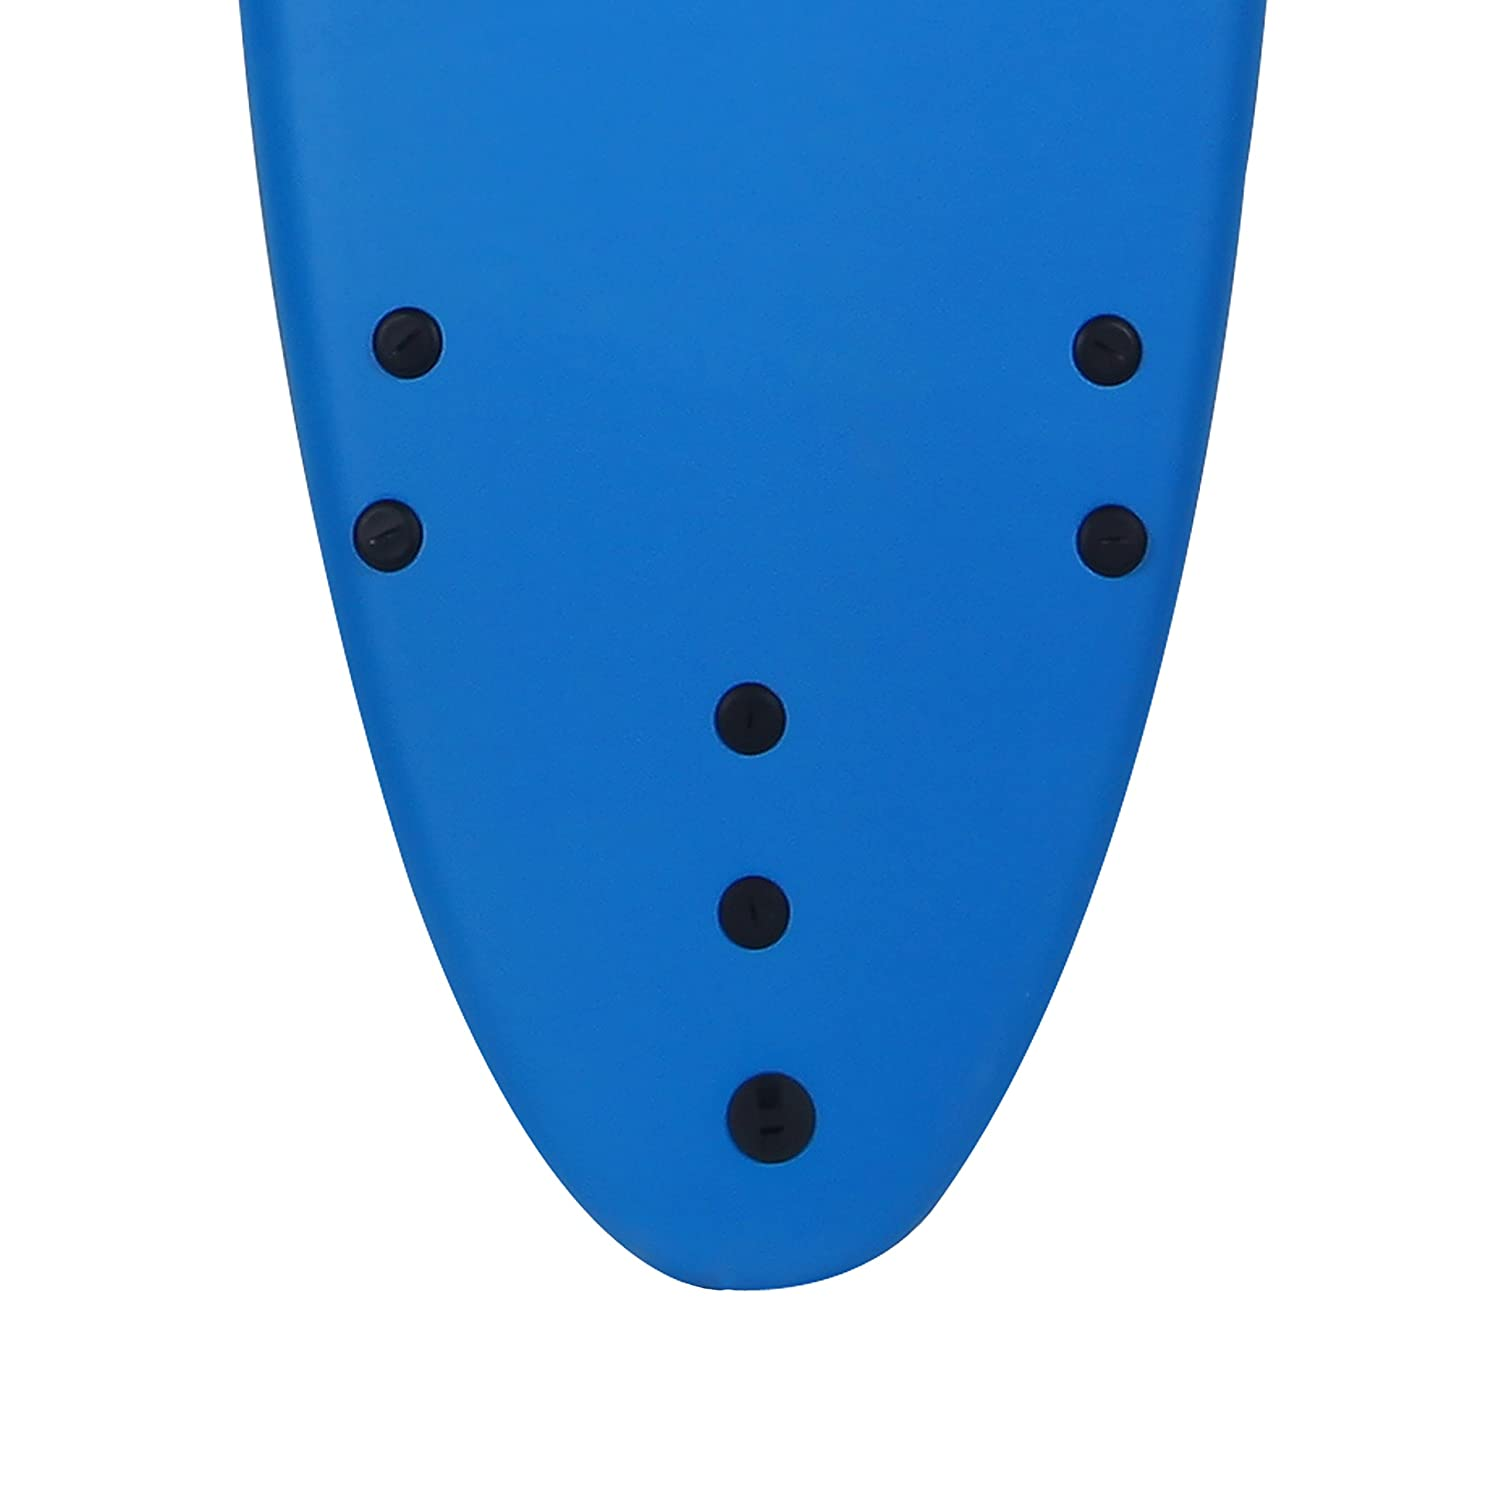 Blue A ALPENFLOW 8 Soft Top Surfboard Foamie Surf Boards Surfing Board with Leash and Removable Fins